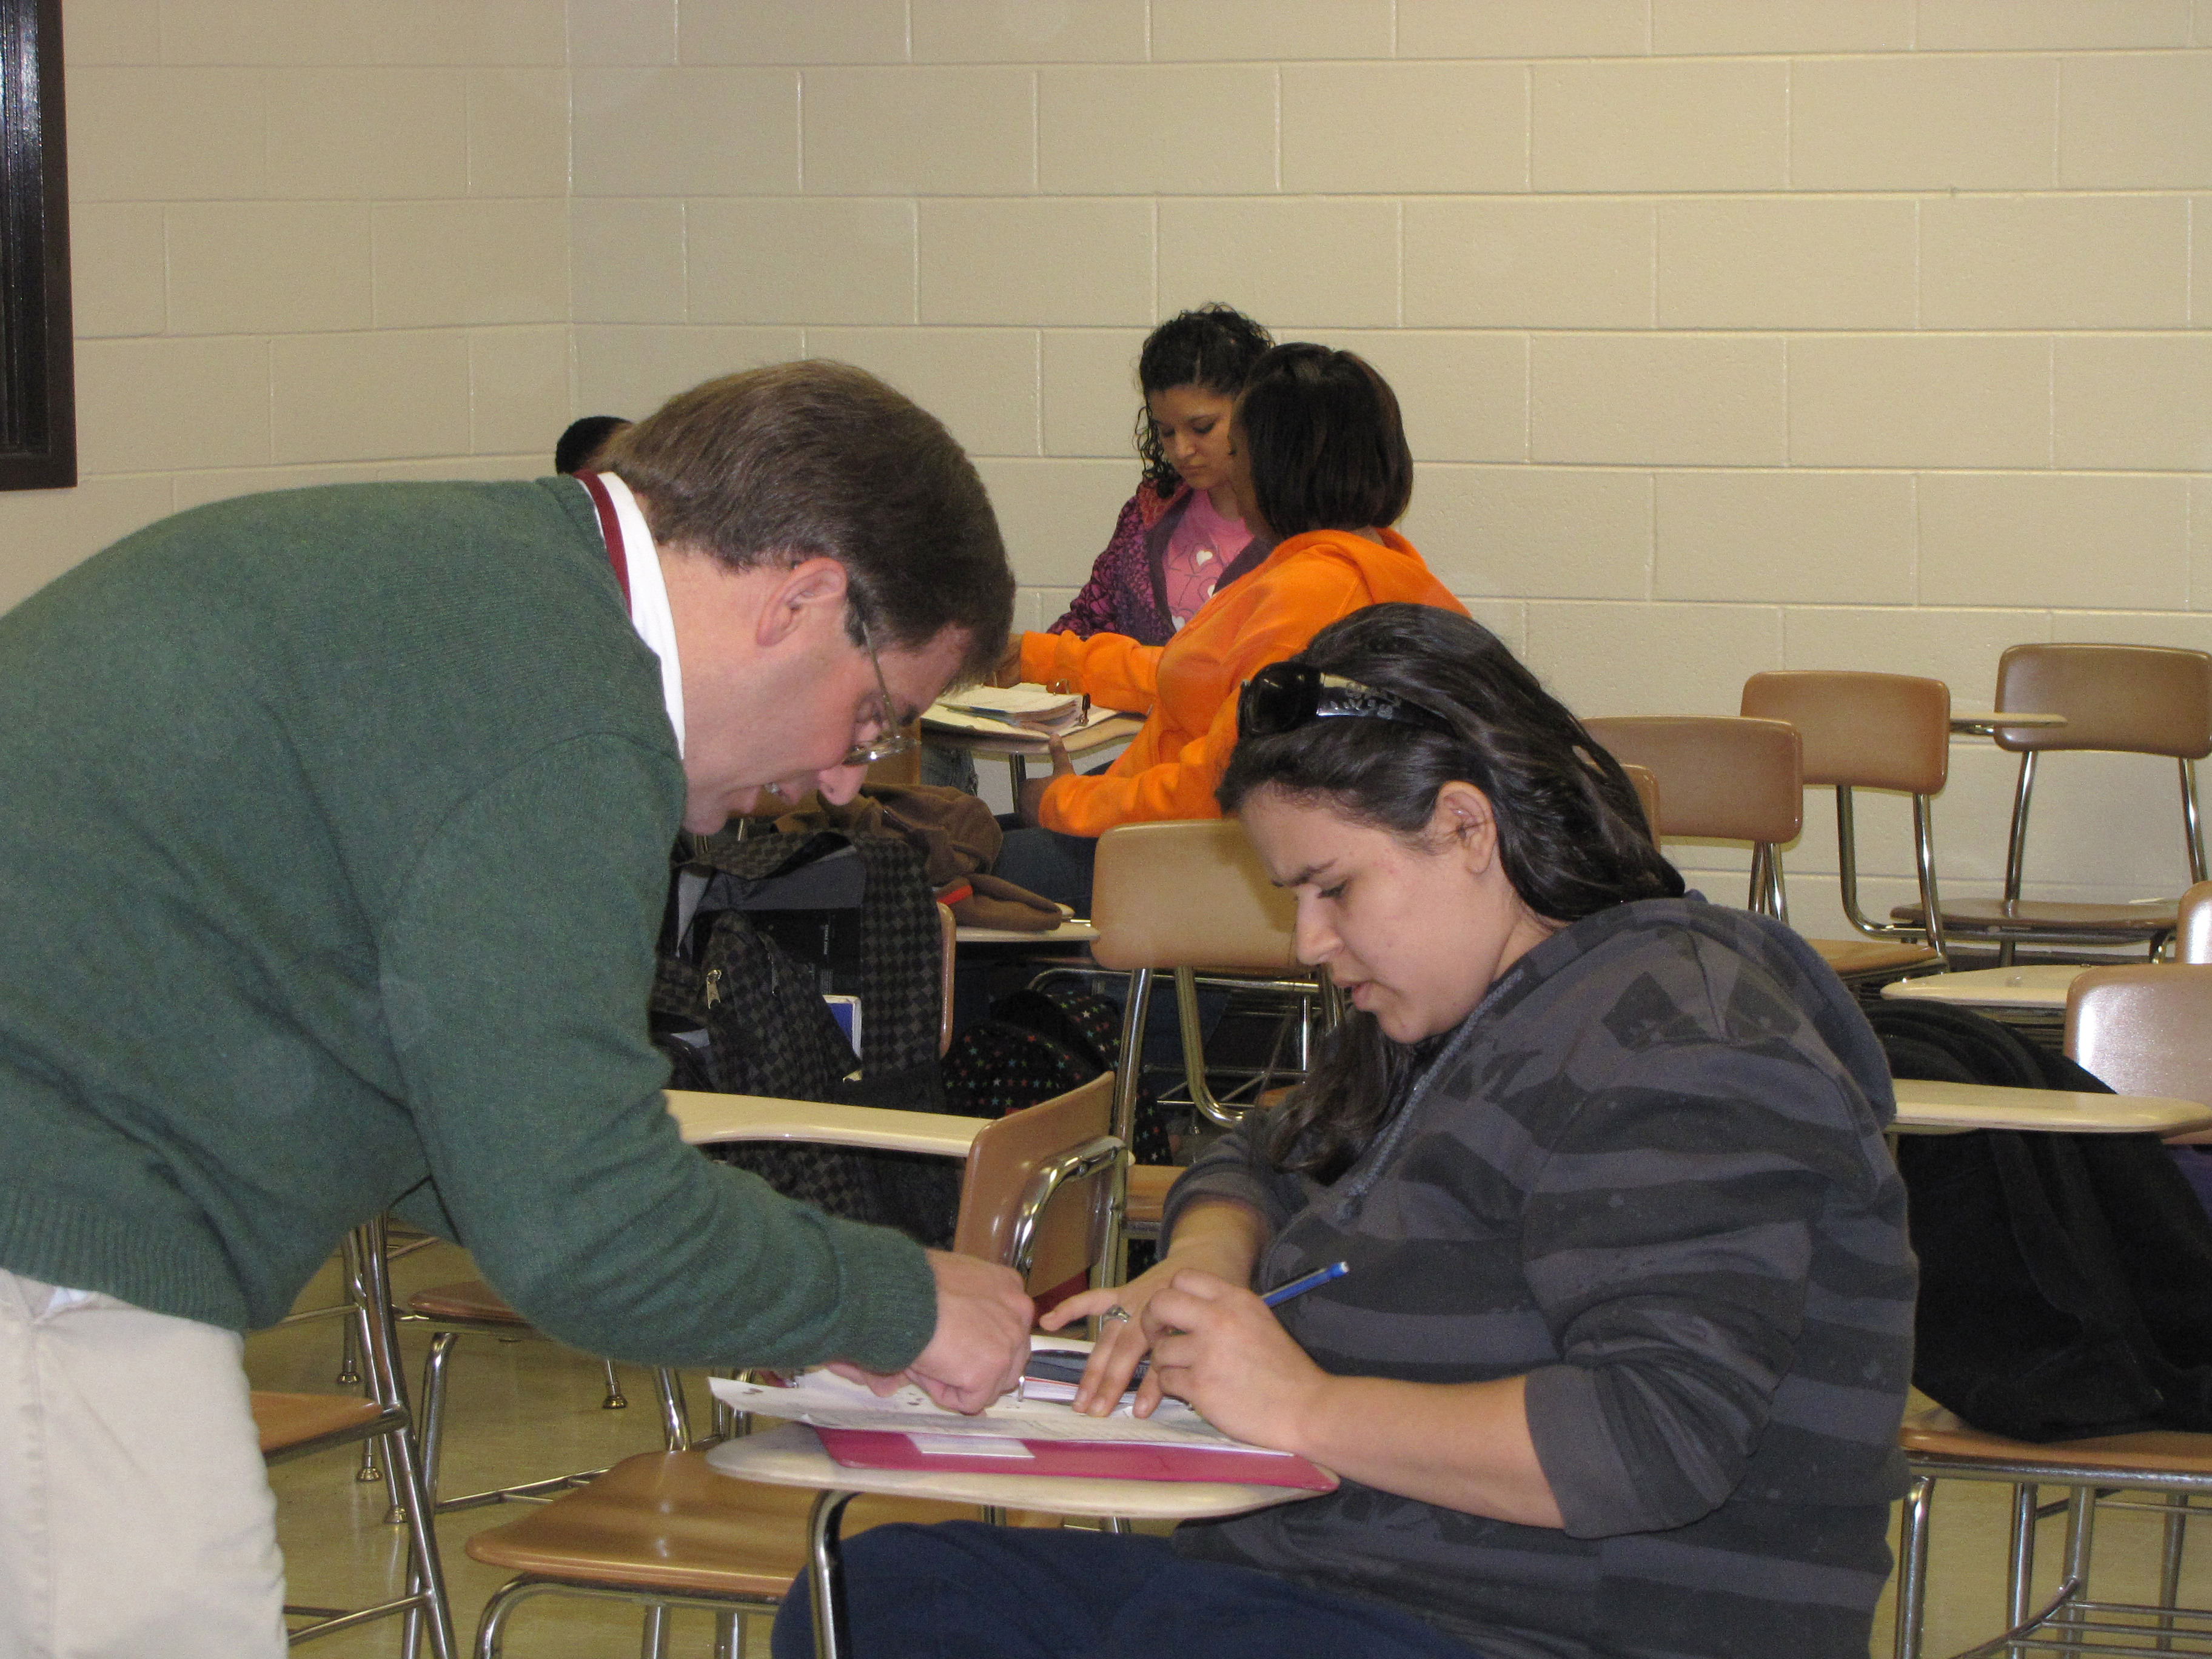 A tutor counsels a student at an Upward Bound session.